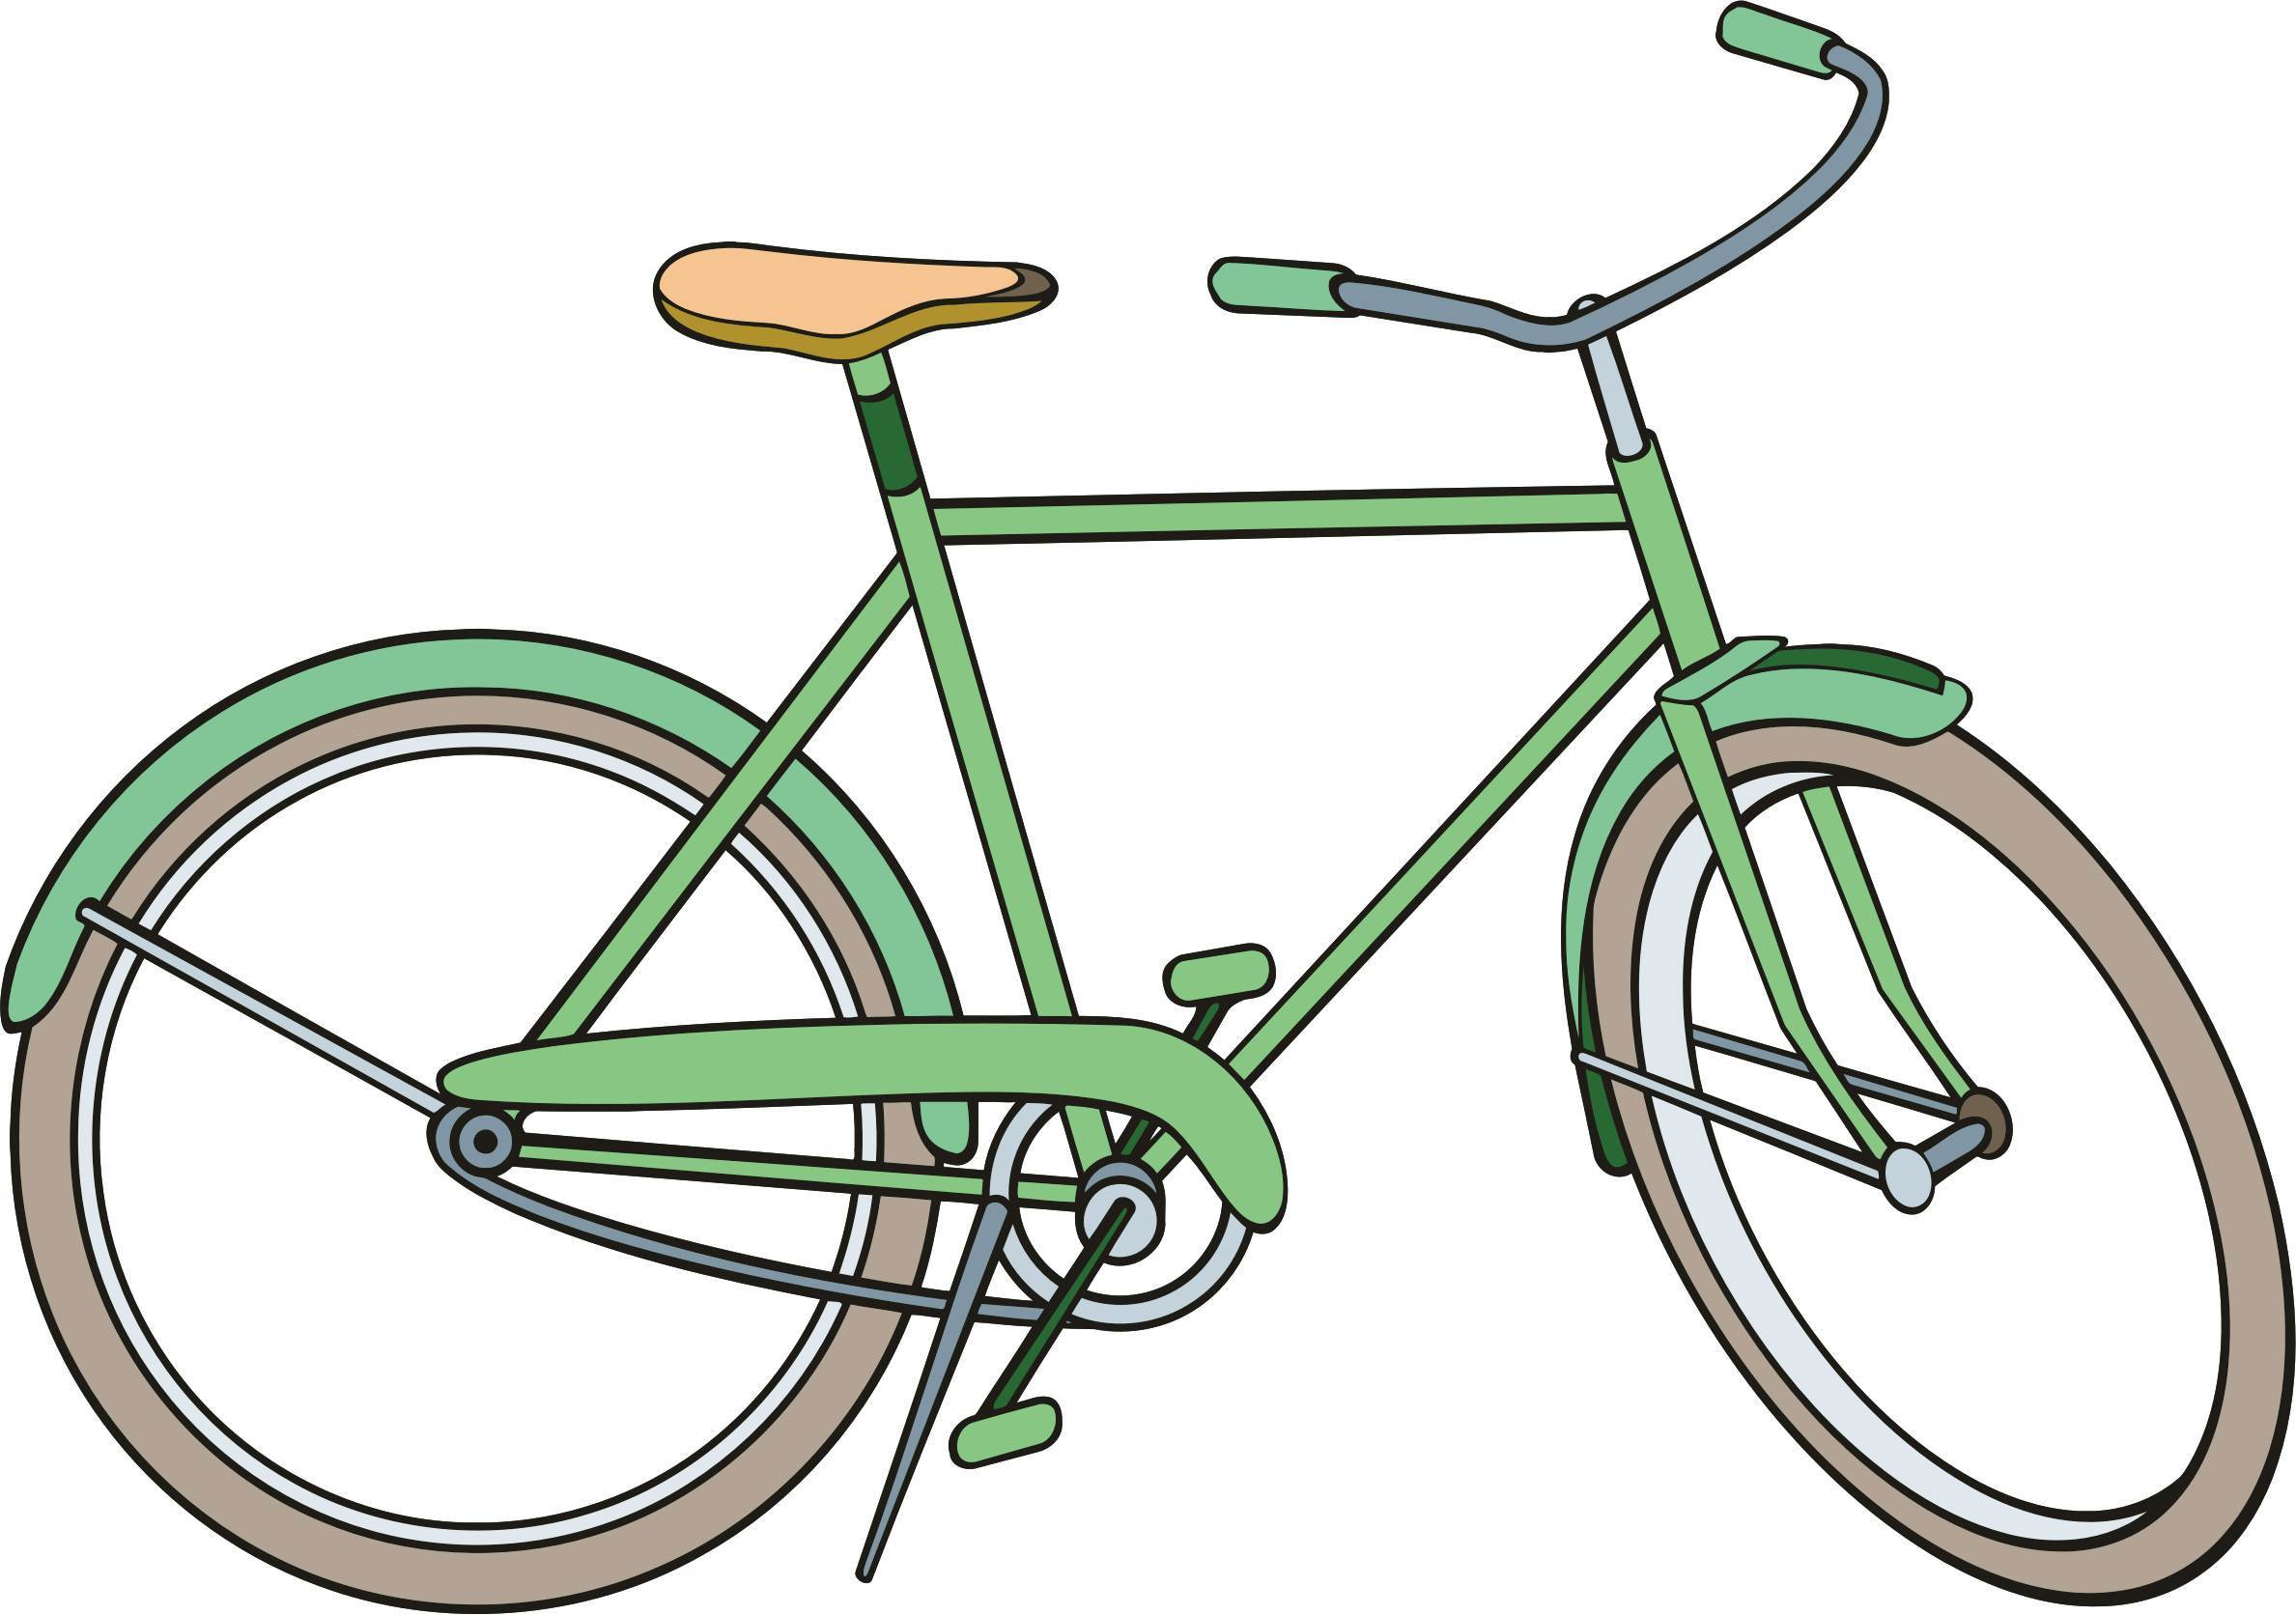 Bike 3 by Firkin